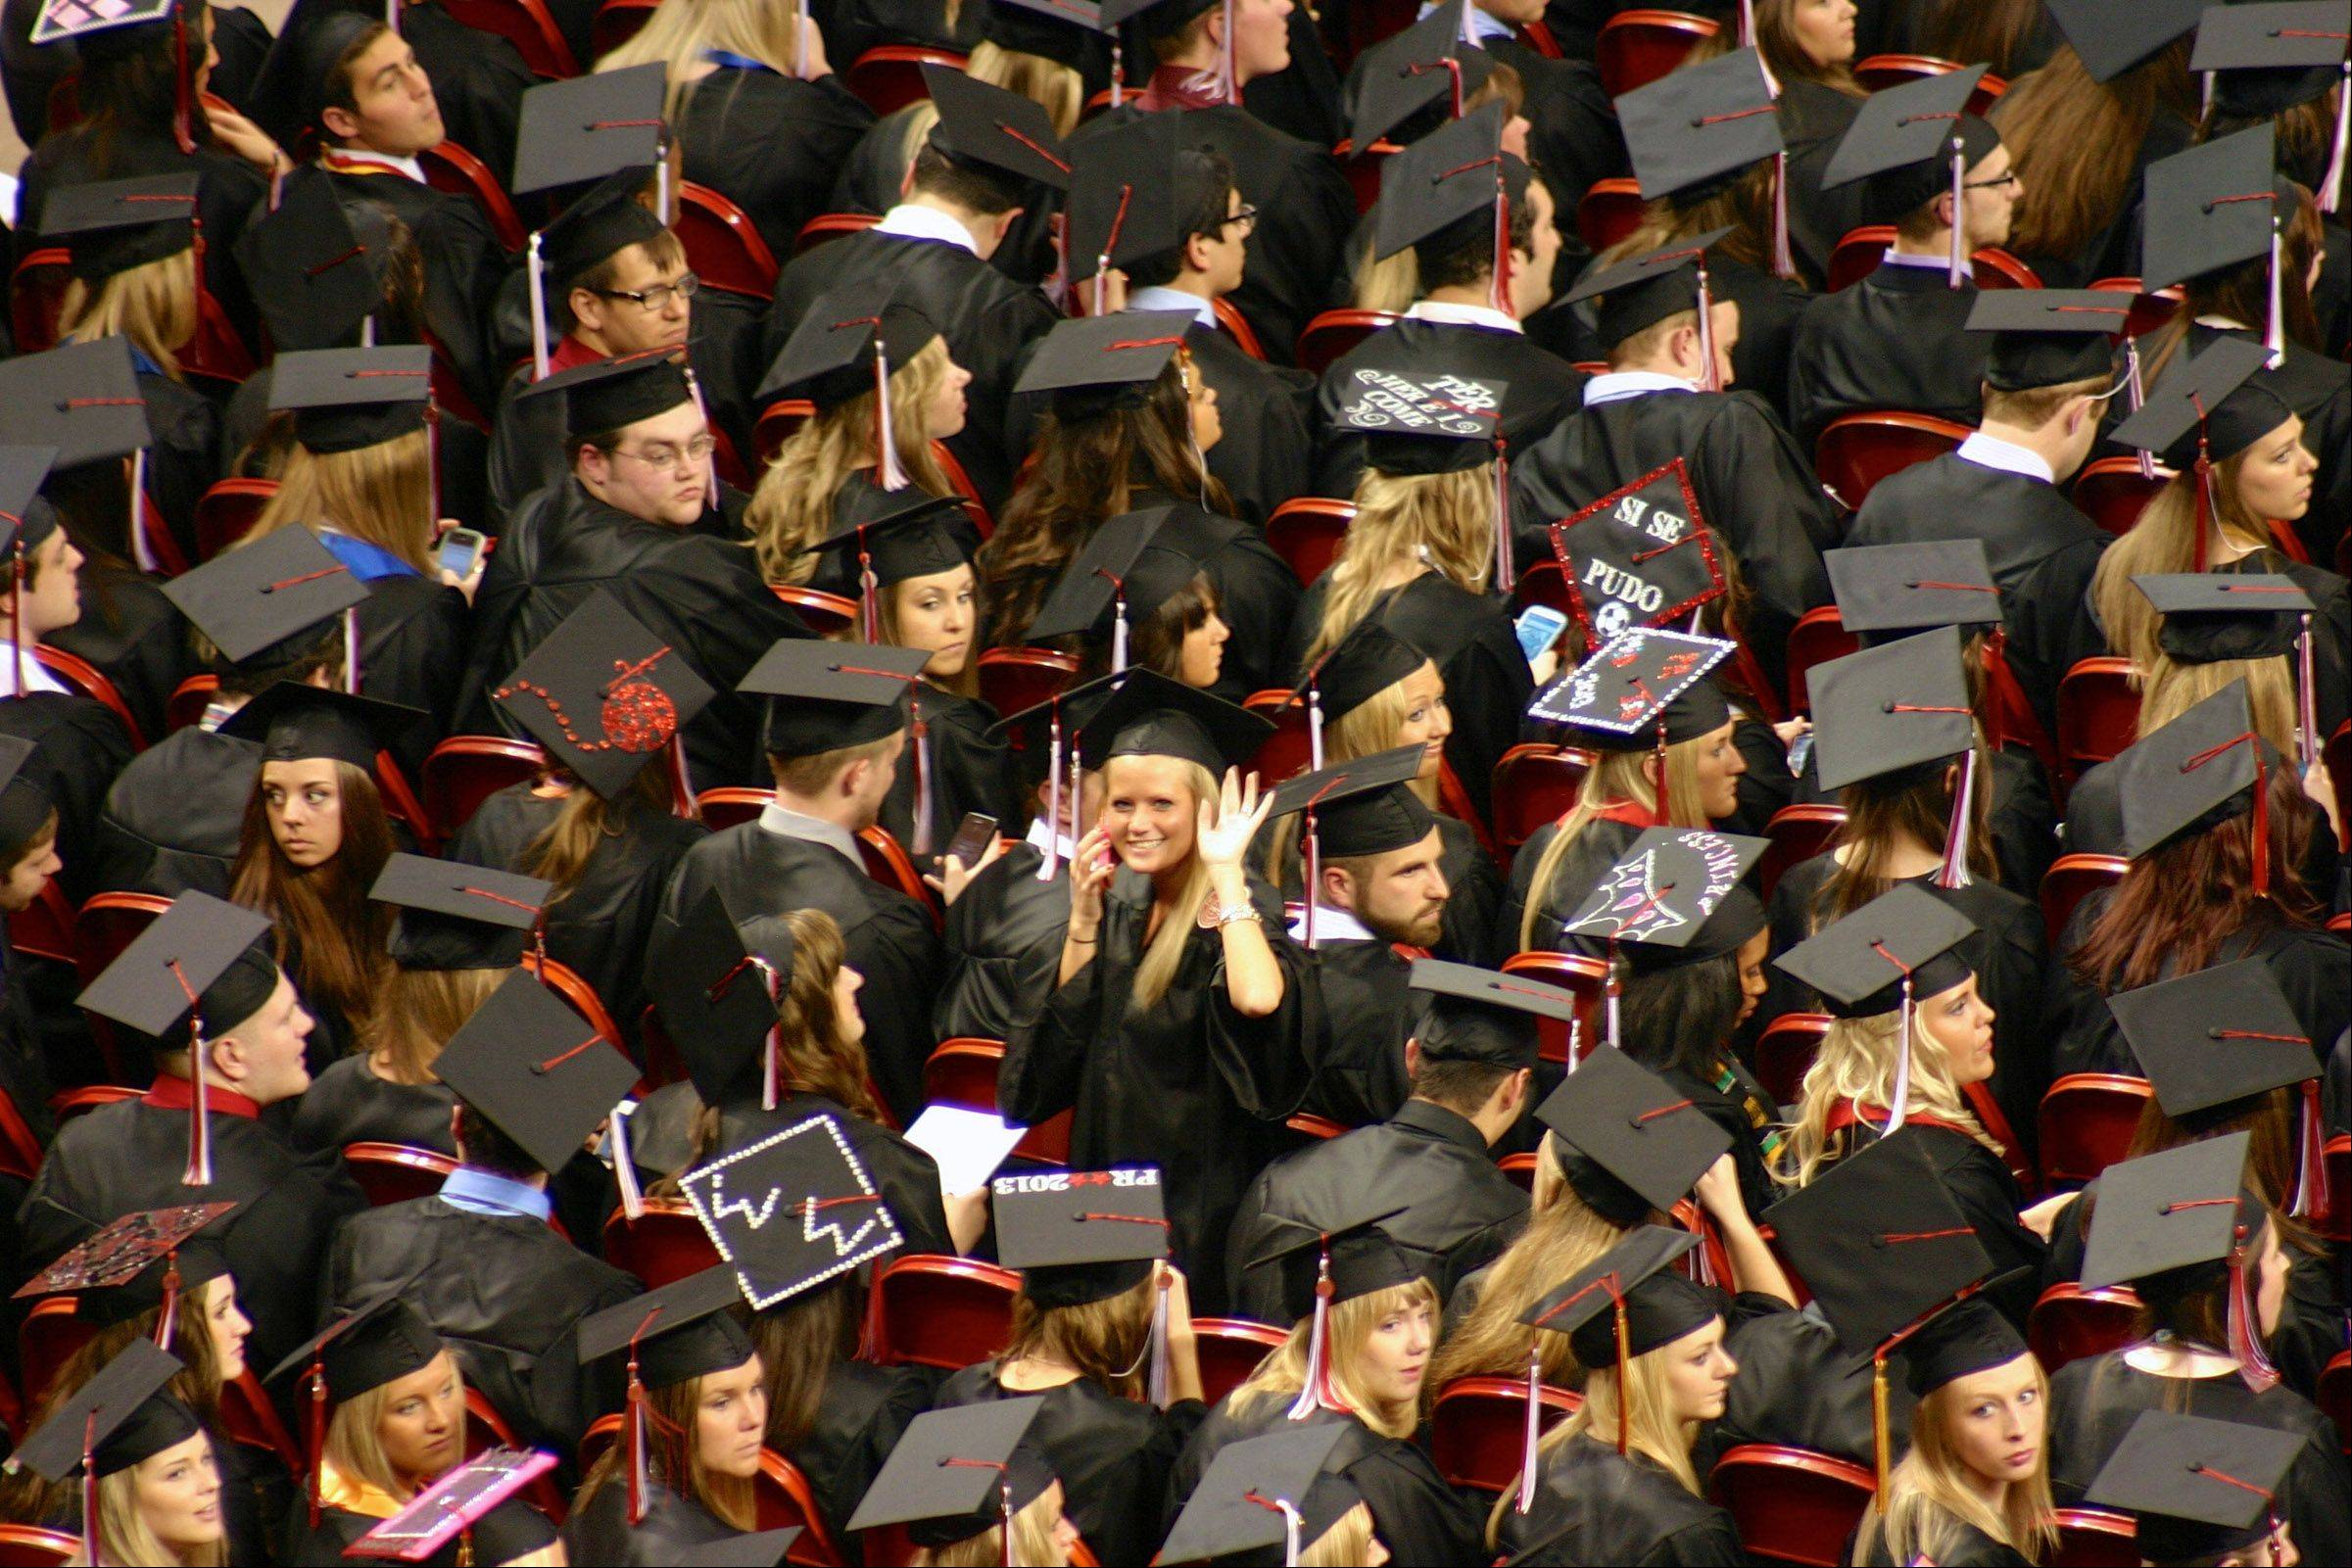 Carly Stinson shines as she waves to family among a sea of graduates at Redbird Arena at Illinois State University on May 10th.